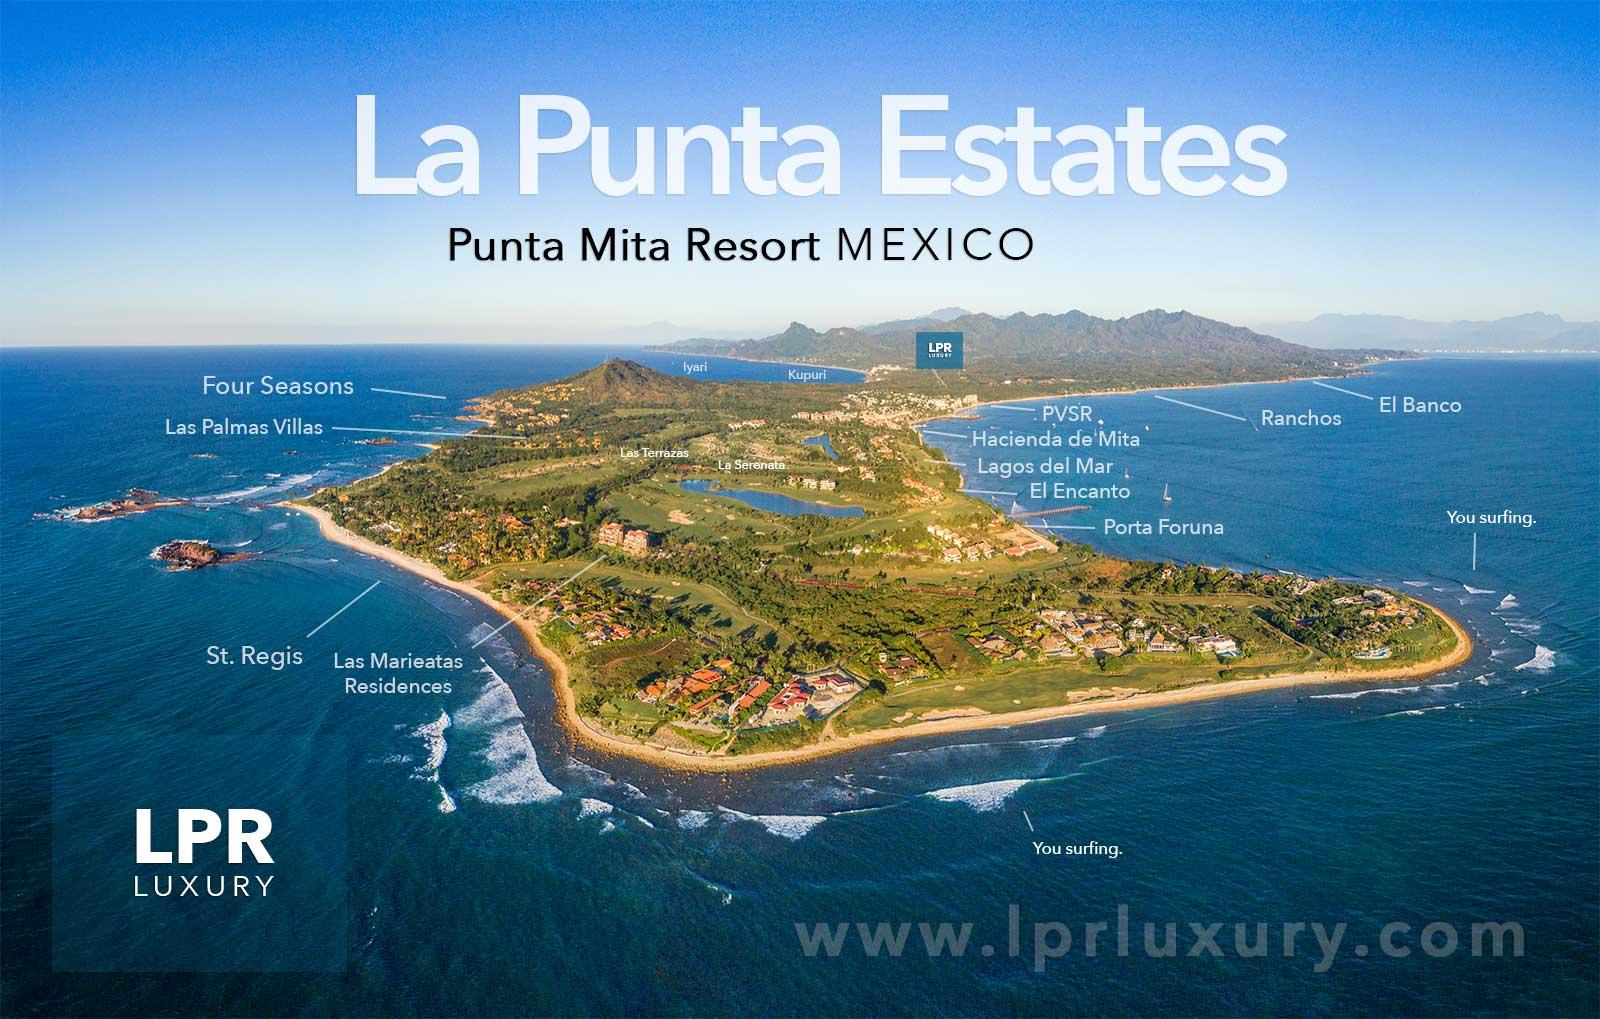 La Punta Estates - Punta Mita Resort Real Estate